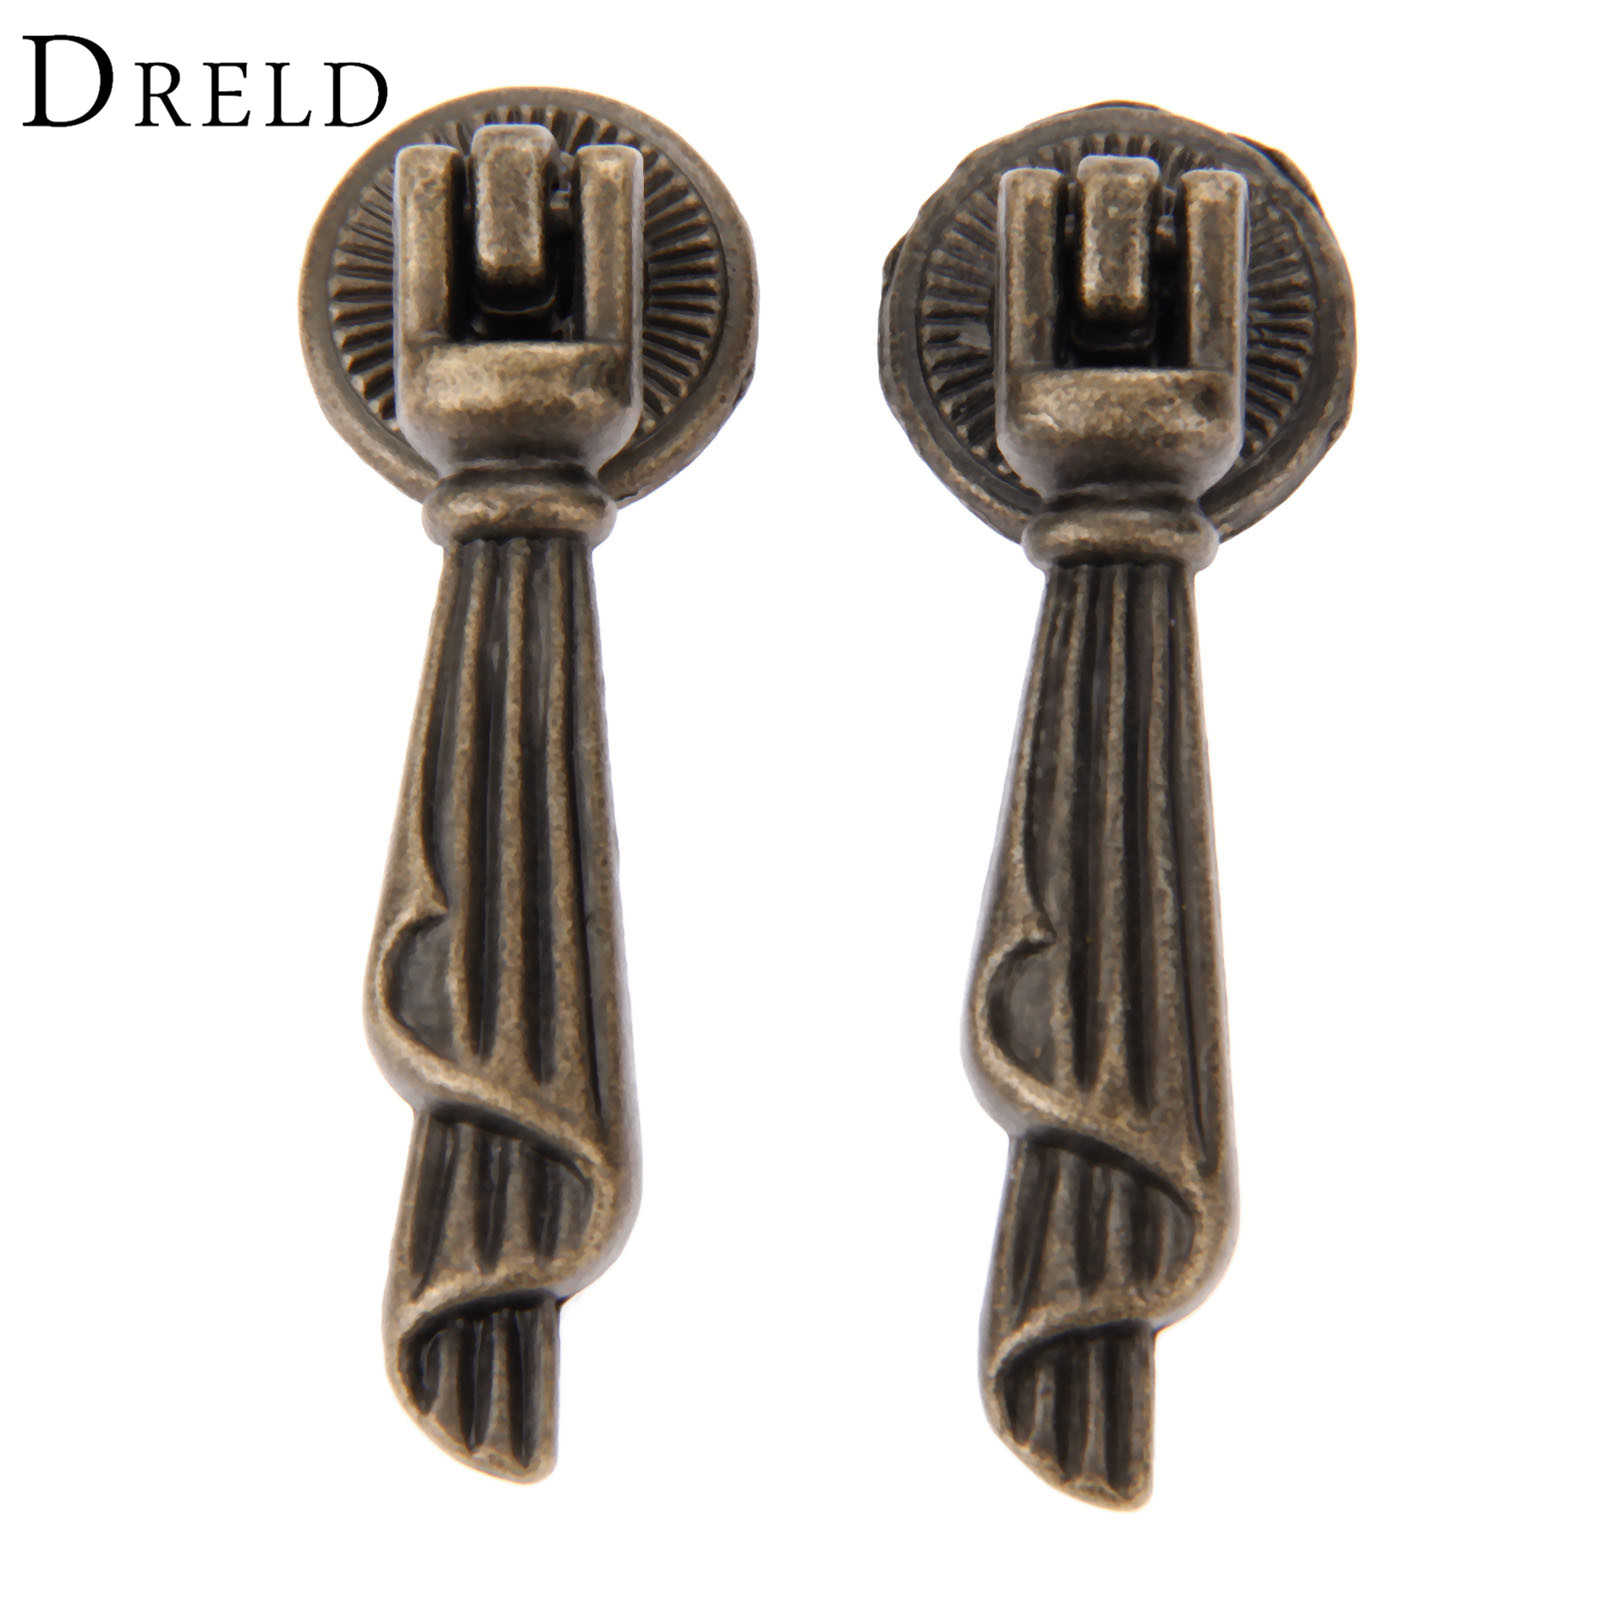 DRELD 2Pcs Antique Furniture Handle Vintage Cabinet Knobs and Handles Kitchen Drawer Wardrobe Cupboard Grip Pull Knobs w/Screws 1 pair 96mm vintage furniture cupboard wardrobe handles and knobs antique bronze alloy kitchen cabinet door drawer pull handle